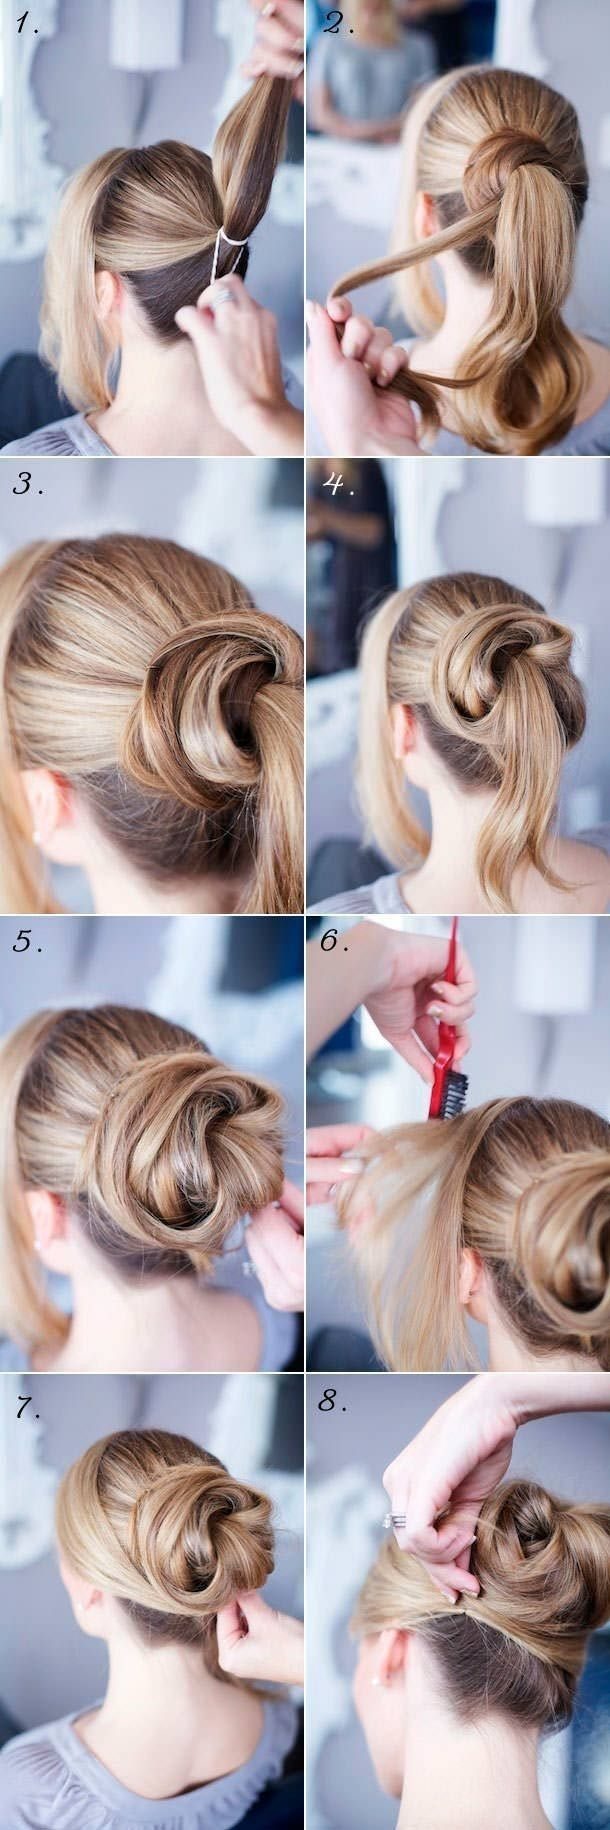 best 25+ winter hairstyles ideas on pinterest | fall hairstyles